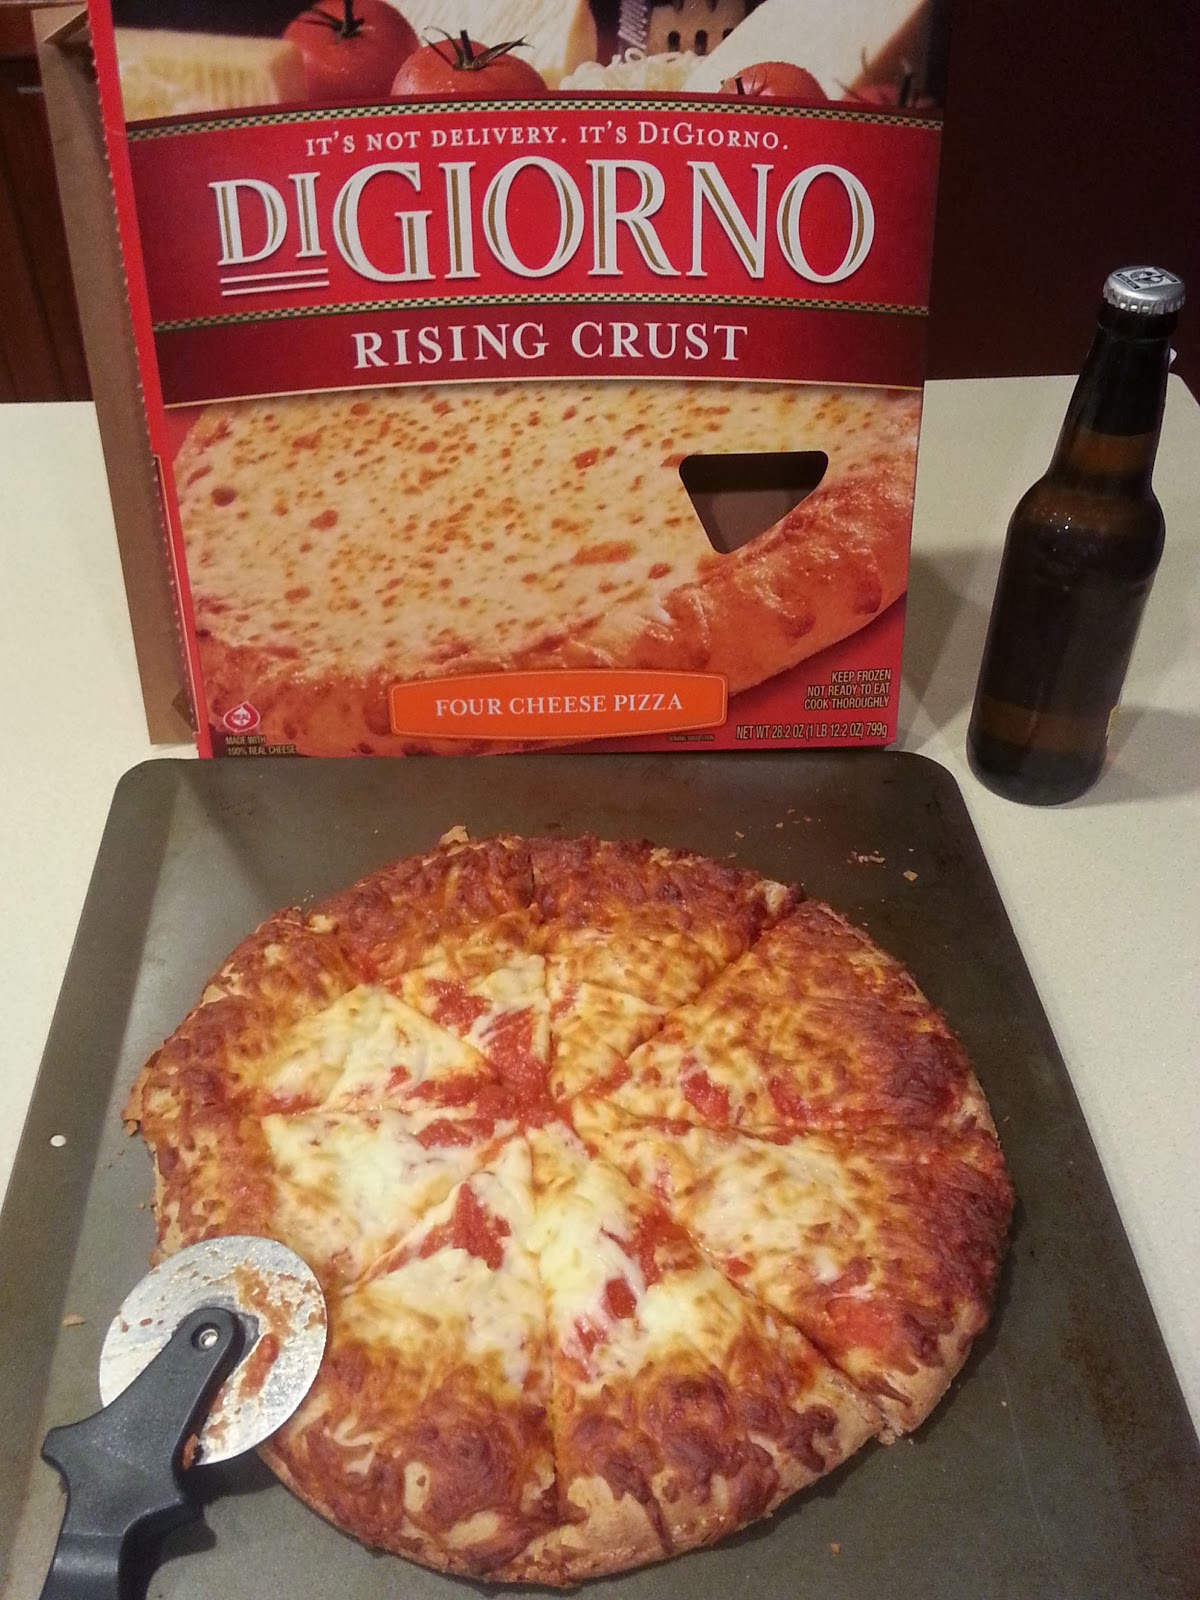 Enjoy some Digiorno Pizza at $4.50 a pie rollback prices at Walmart for the big game. #GameTimeGoodies